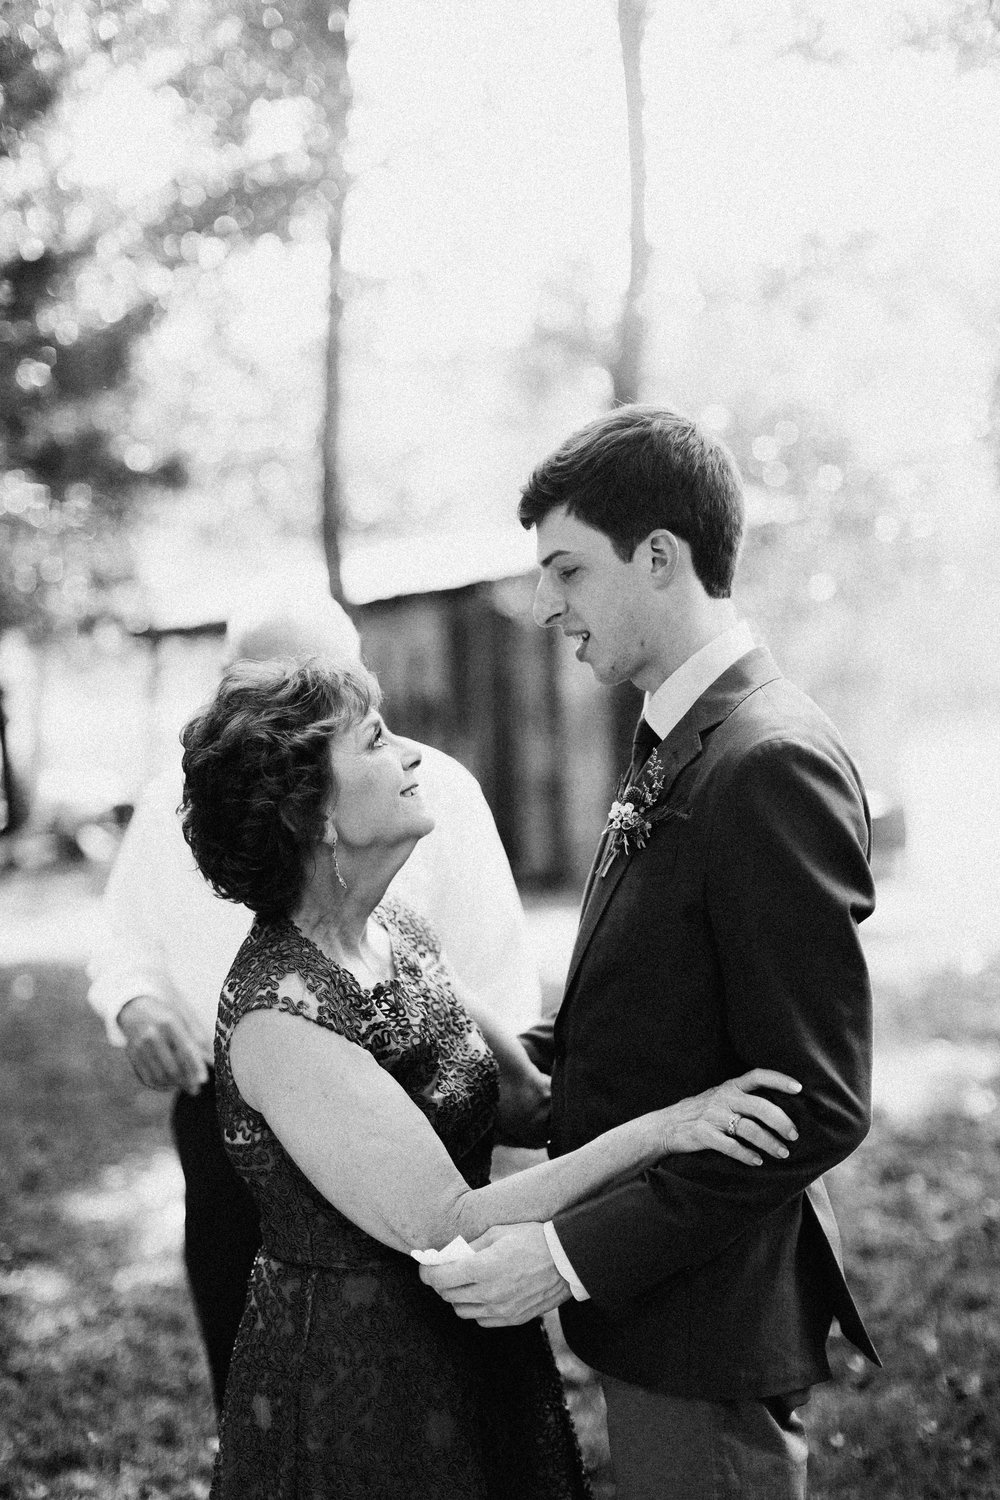 cleveland_georgia_mountain_laurel_farm_natural_classic_timeless_documentary_candid_wedding_emotional_photojournalism_river_west_1287.jpg